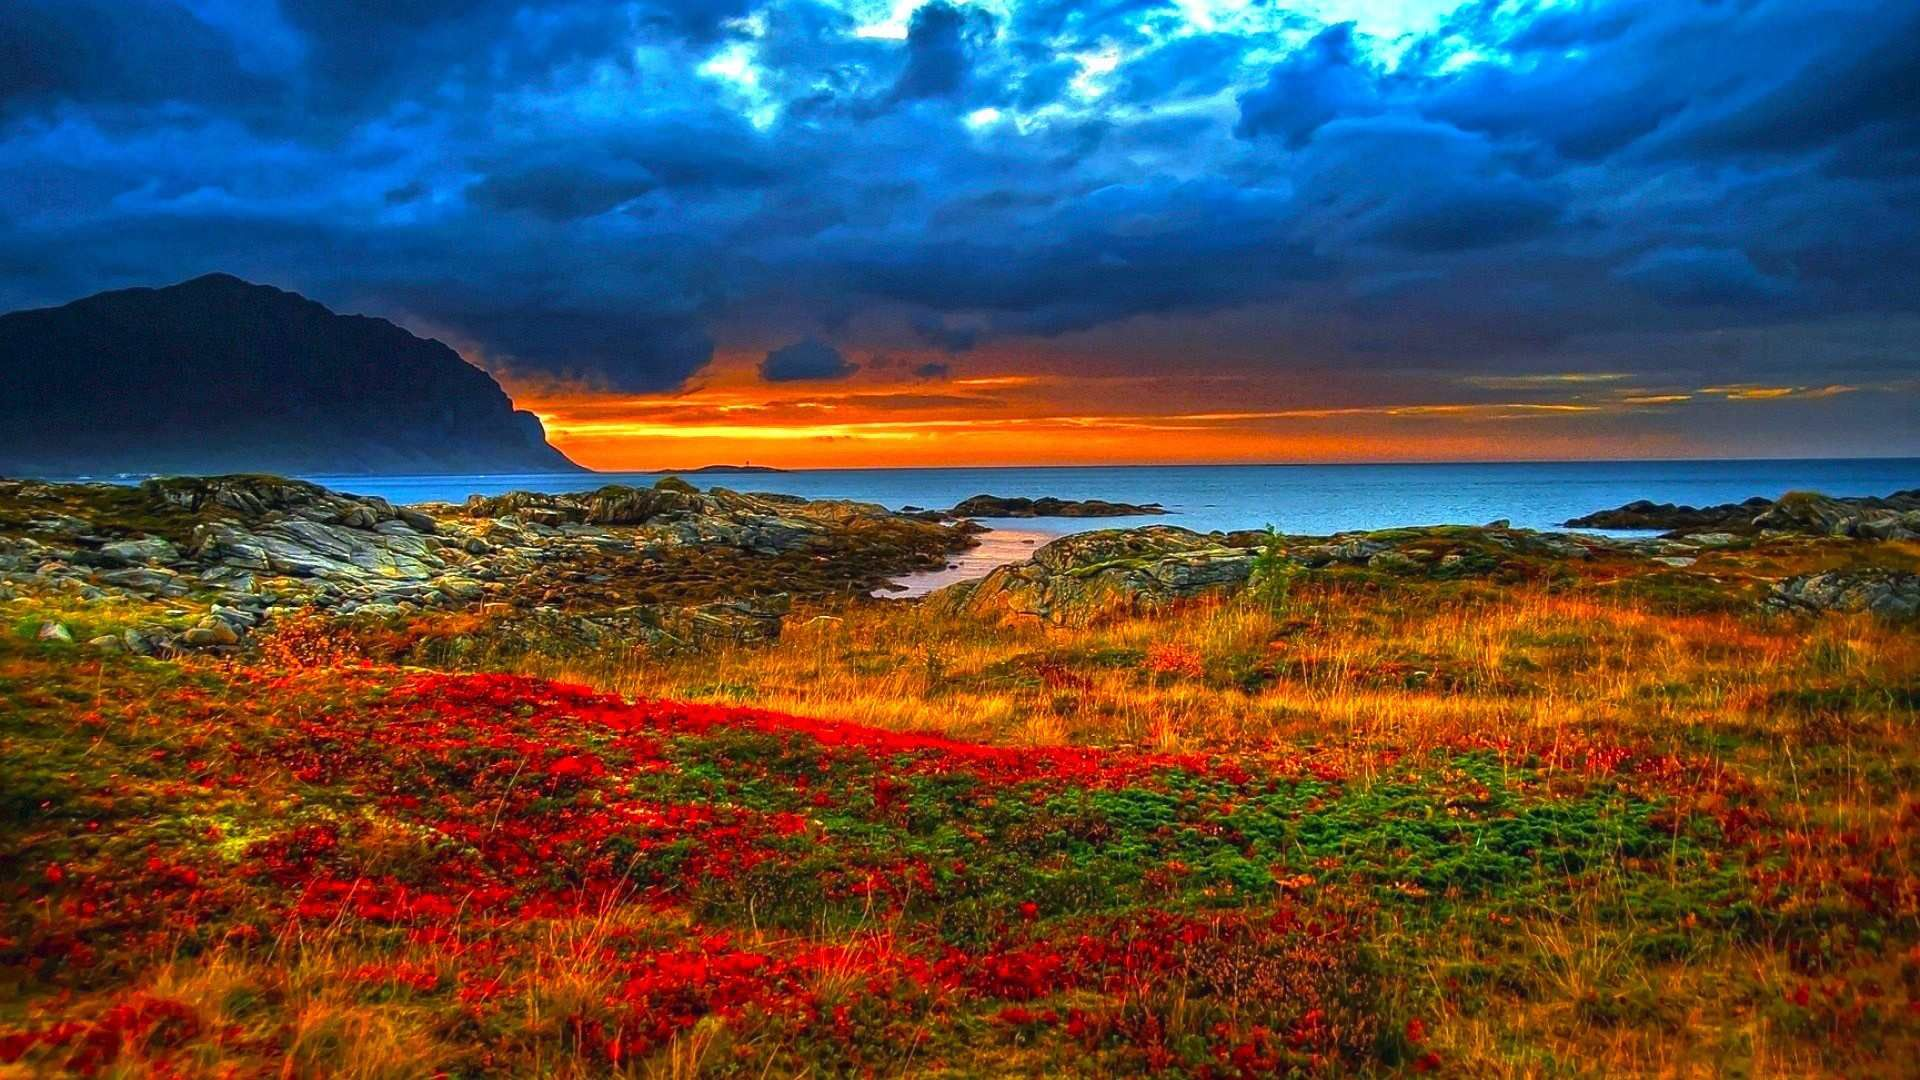 Beautiful Nature Wallpapers - Google Search